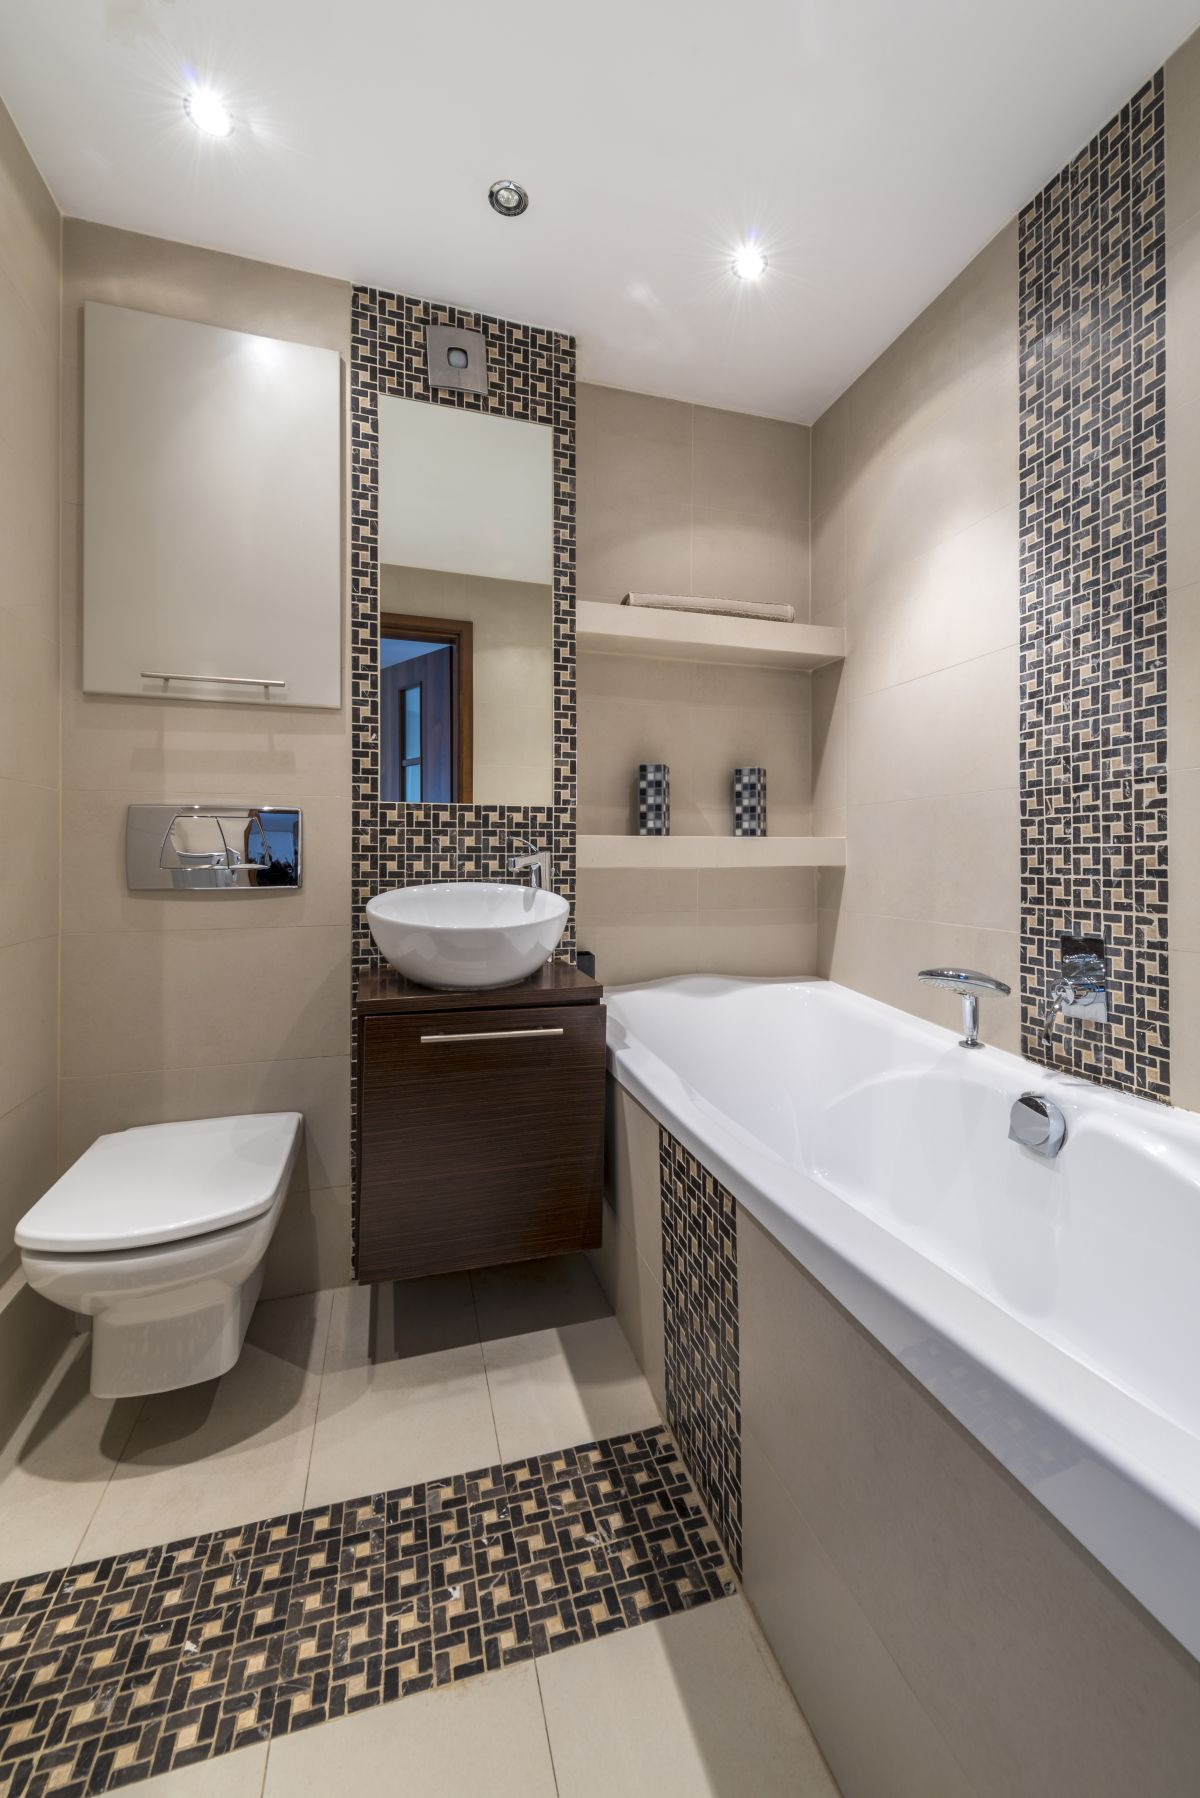 Size matters bathroom renovation costs for your size bath for How much to redo a small bathroom